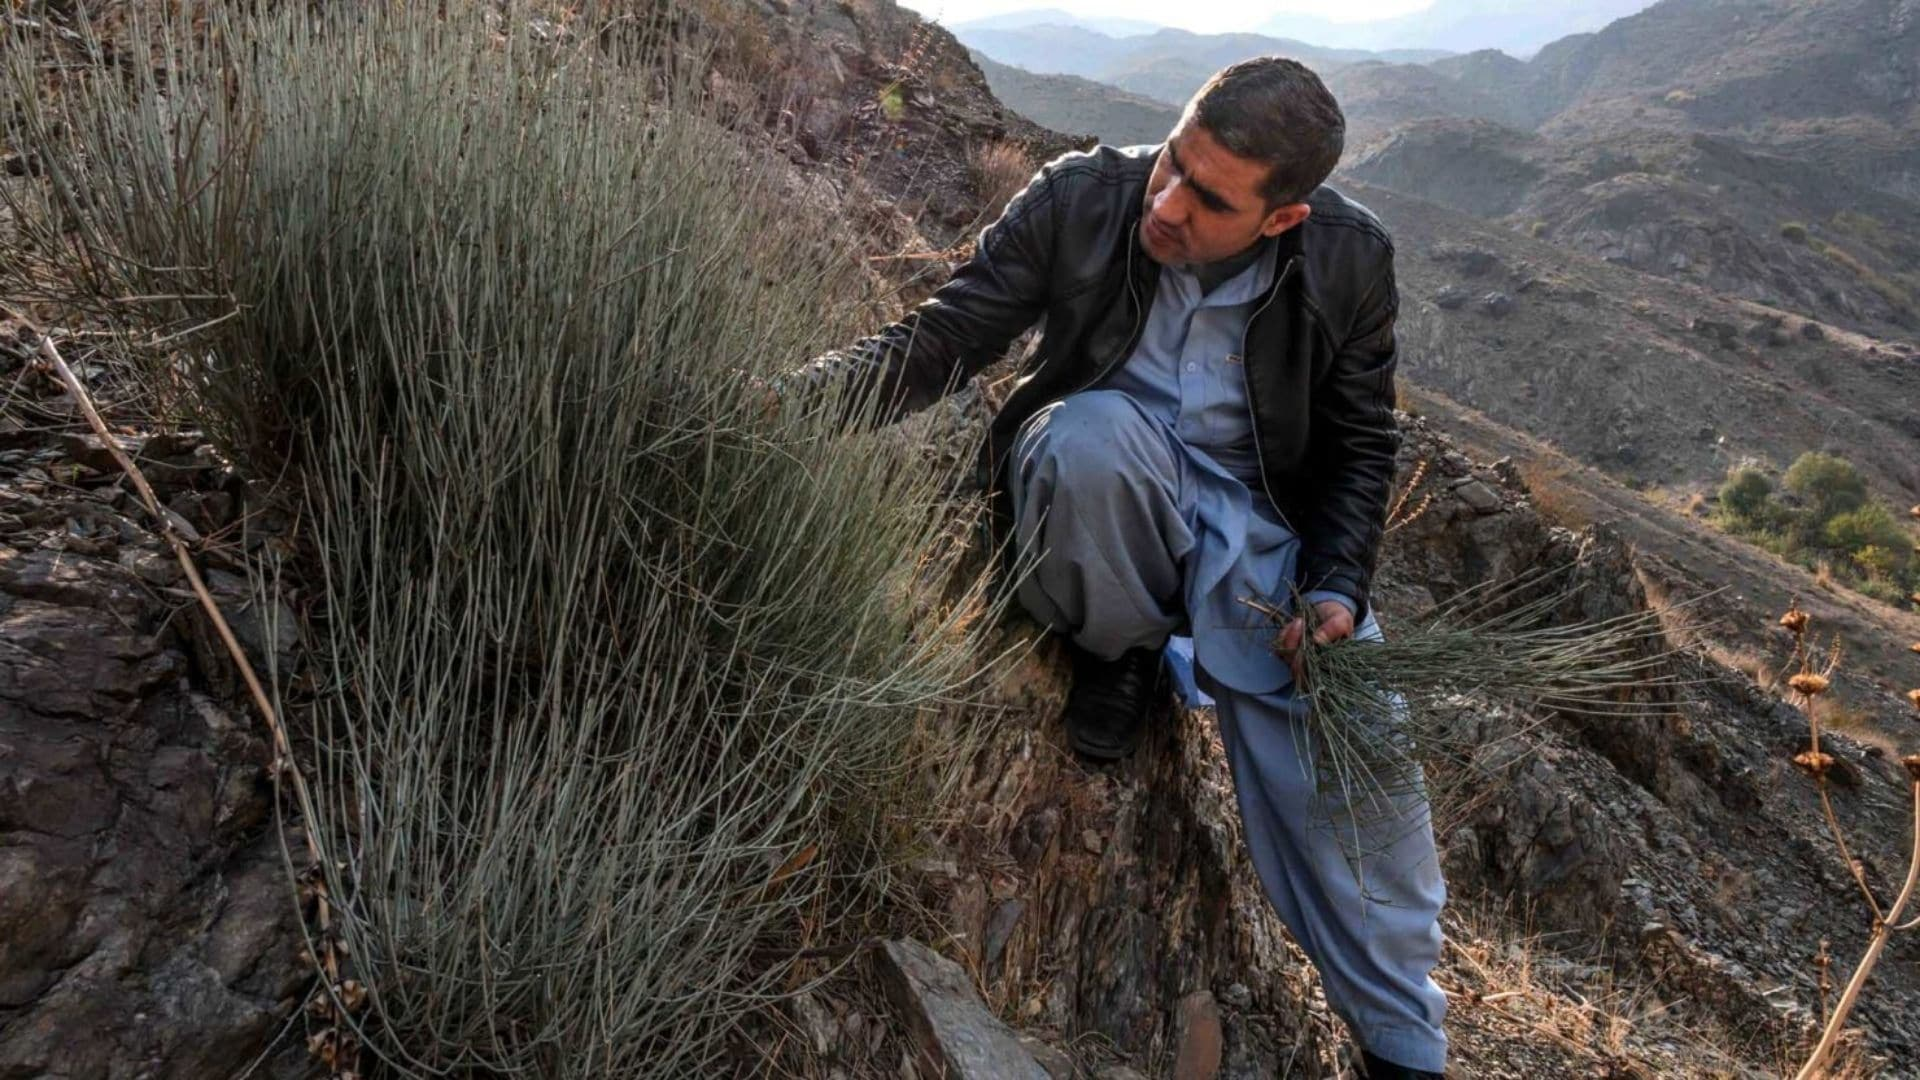 In Afghanistan, the wild ephedra shrub breathes new life into country's meth epidemic